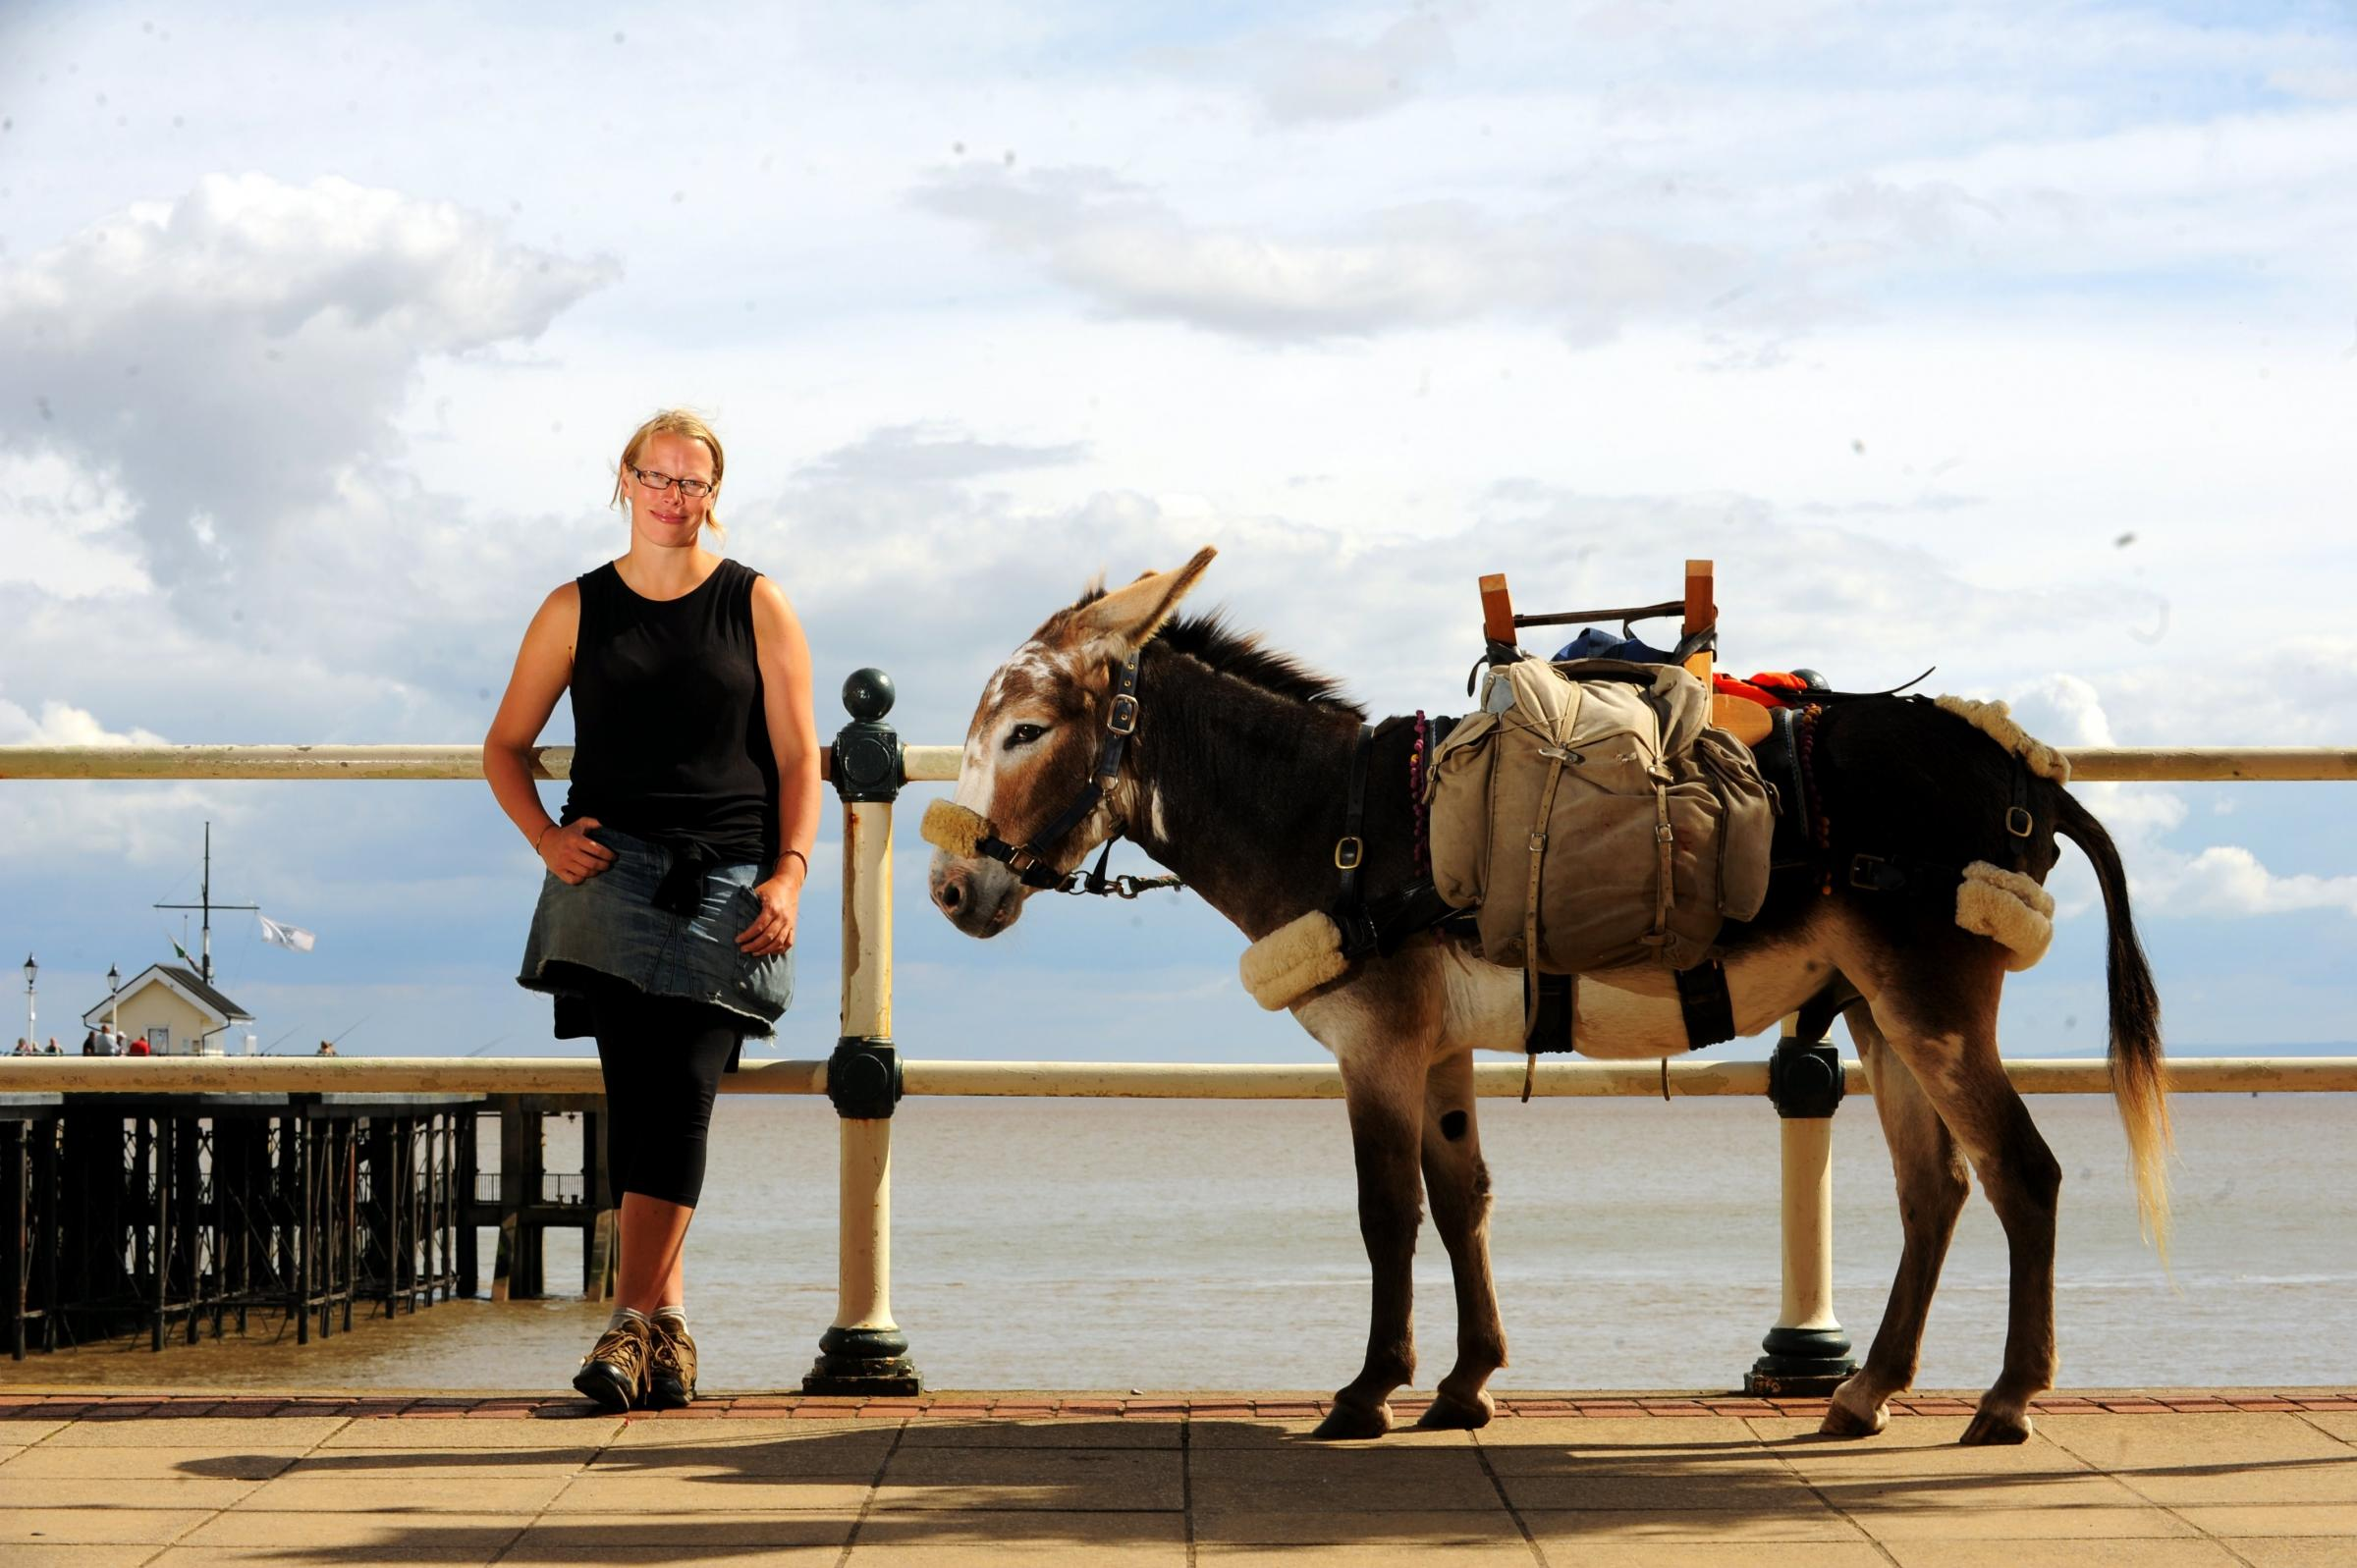 Hannah Engelkamp, whose own walk around Wales was accompanied by a donkey called Chico